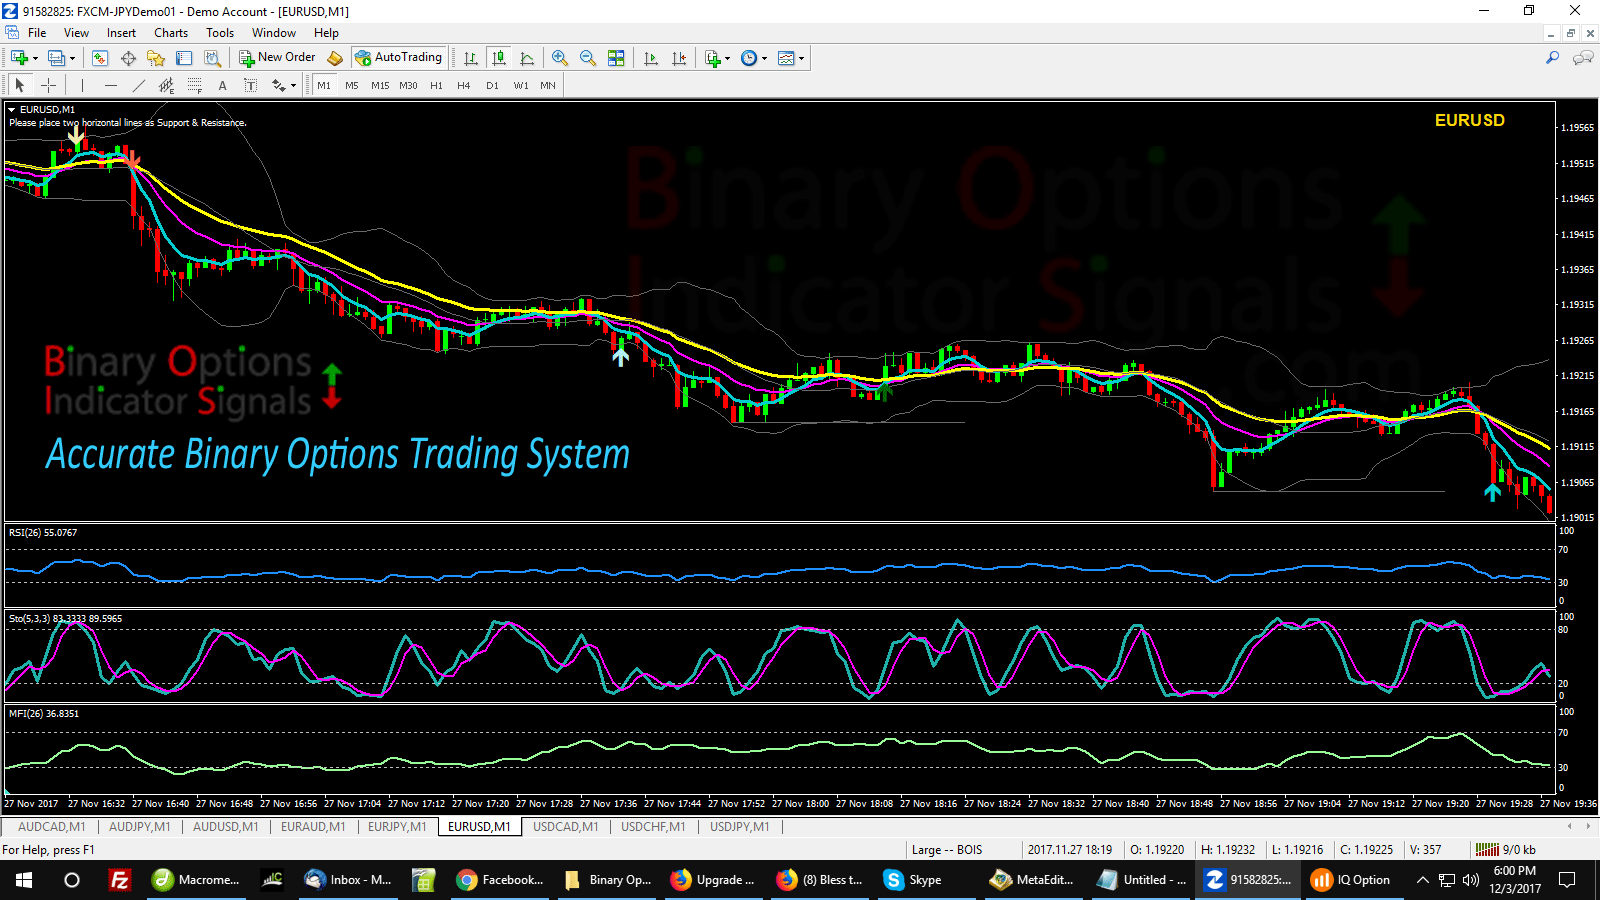 Binary options training indicator